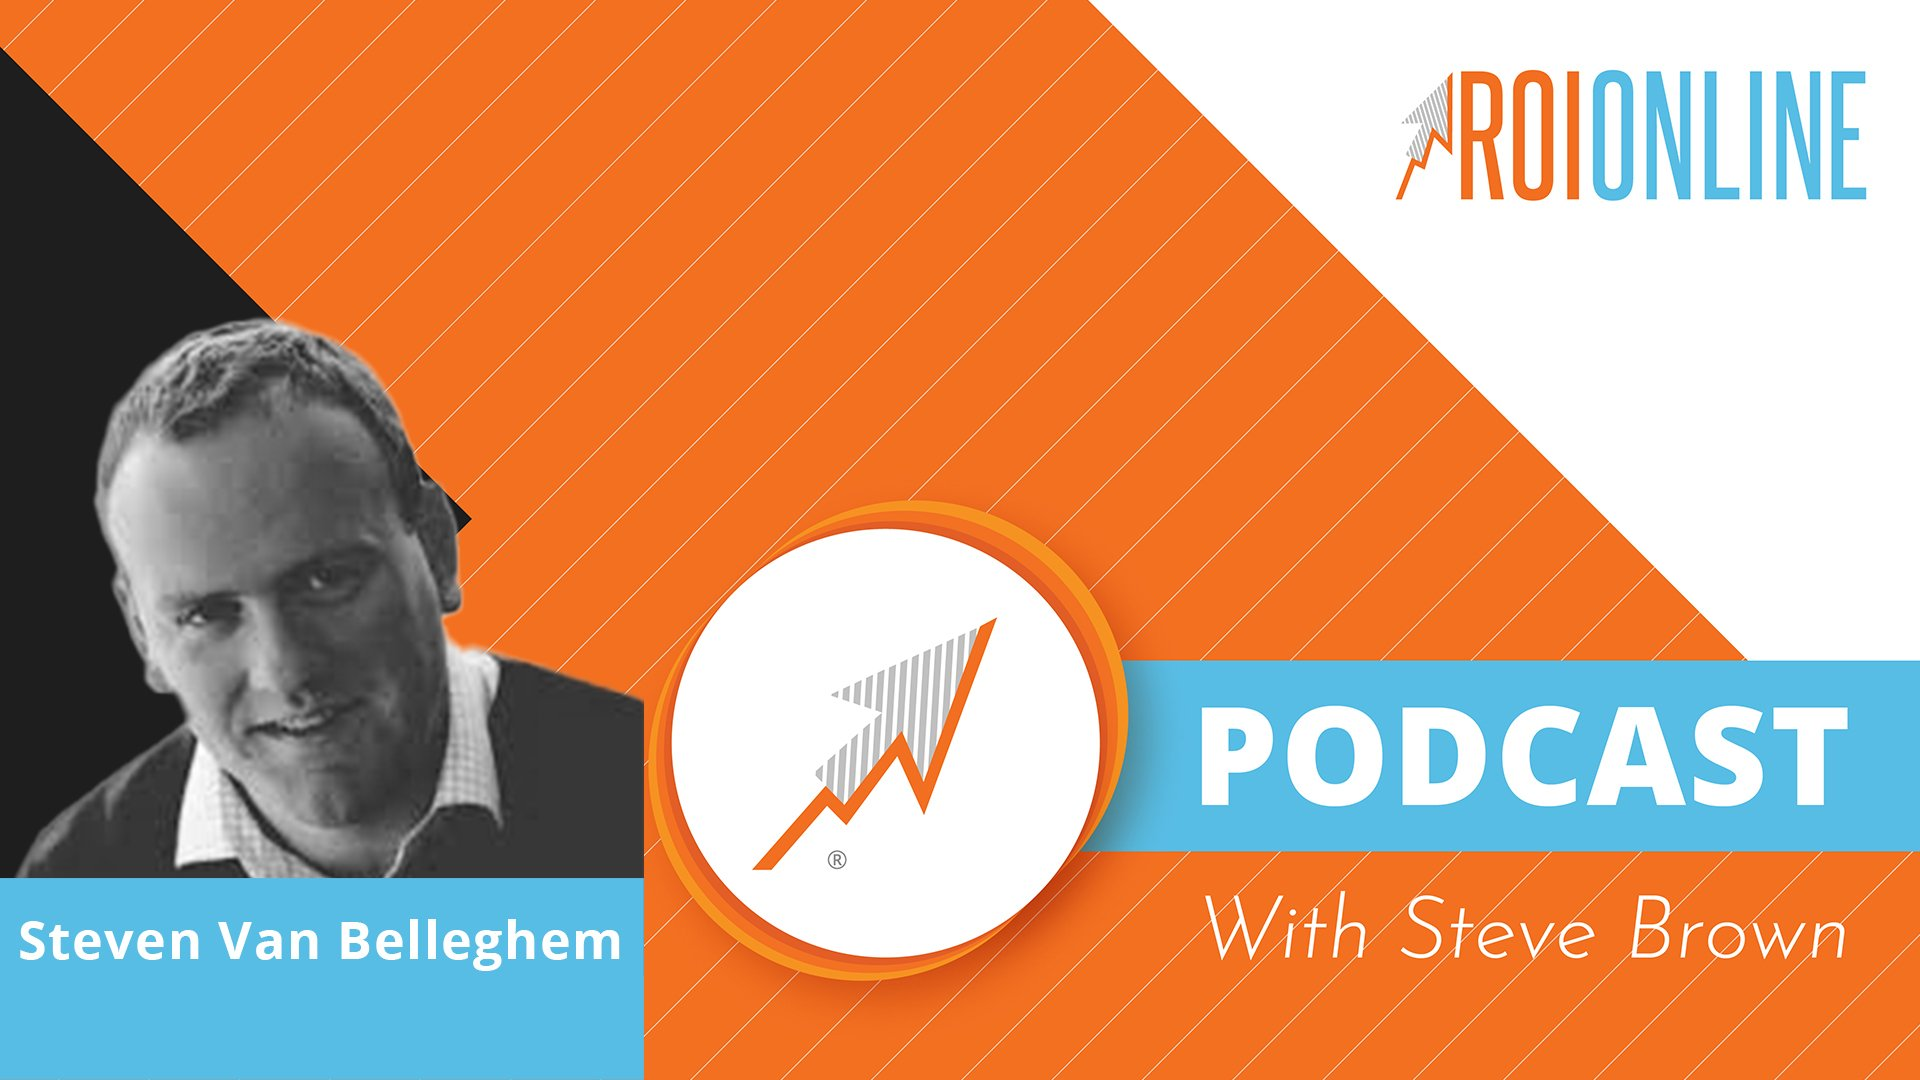 ROI Online Podcast thumbnail graphic on orange background and white and baby blue text